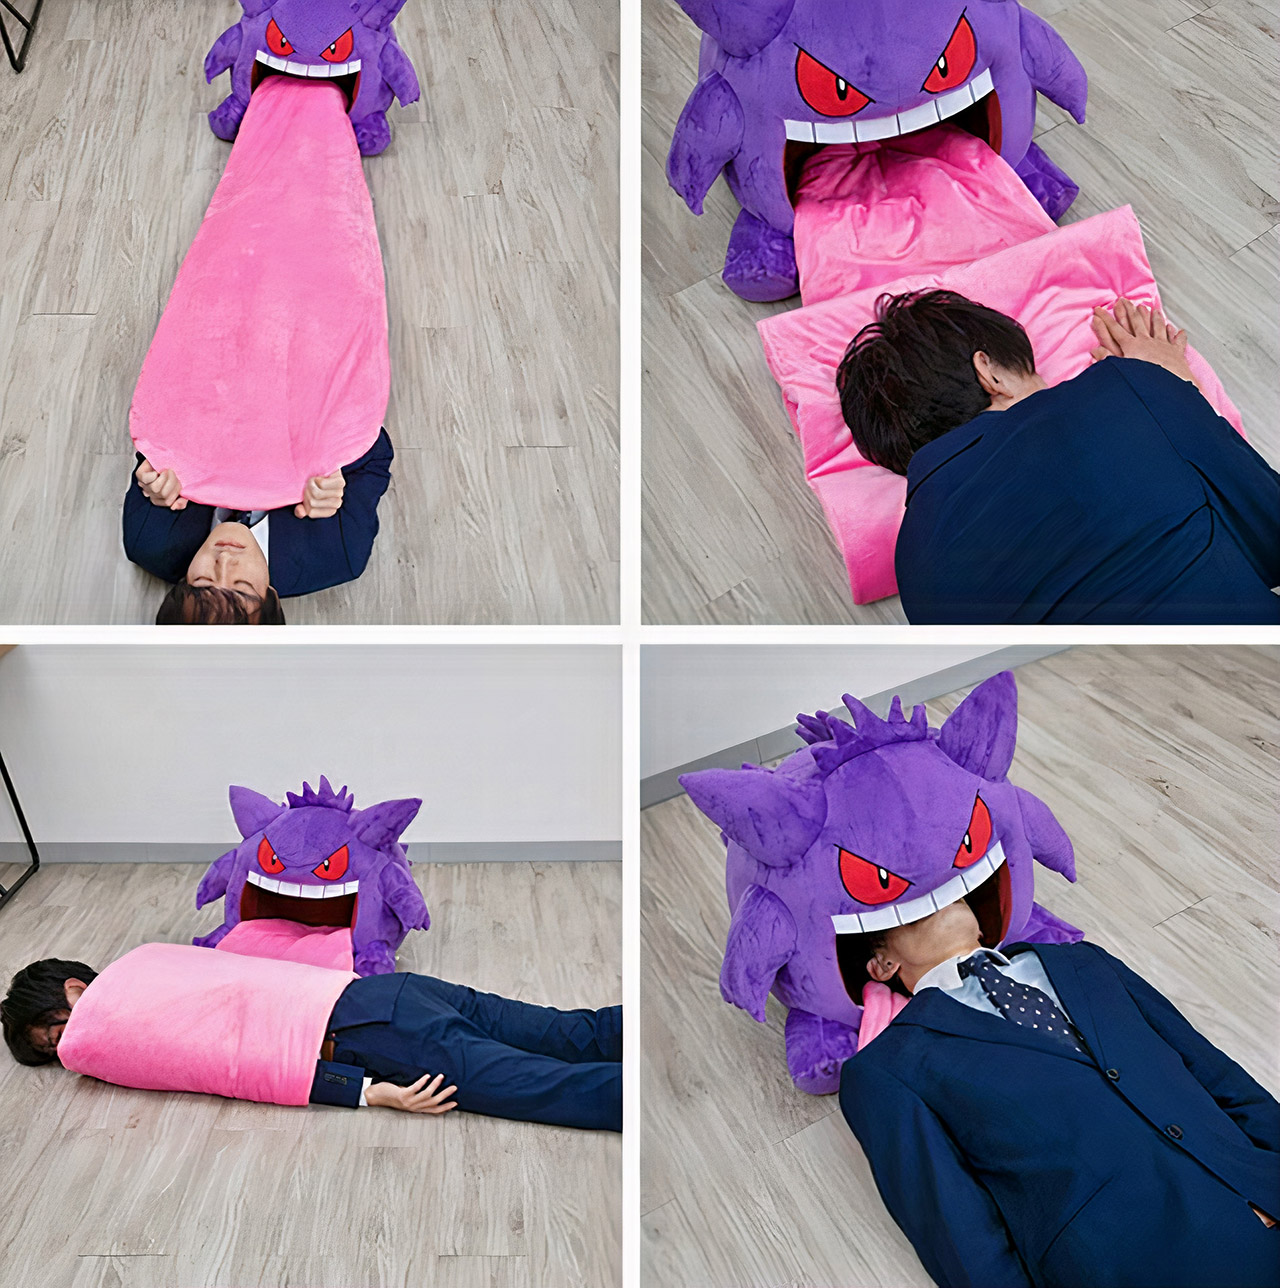 Bandai Pokemon Gengar Plush Sleeping Companion